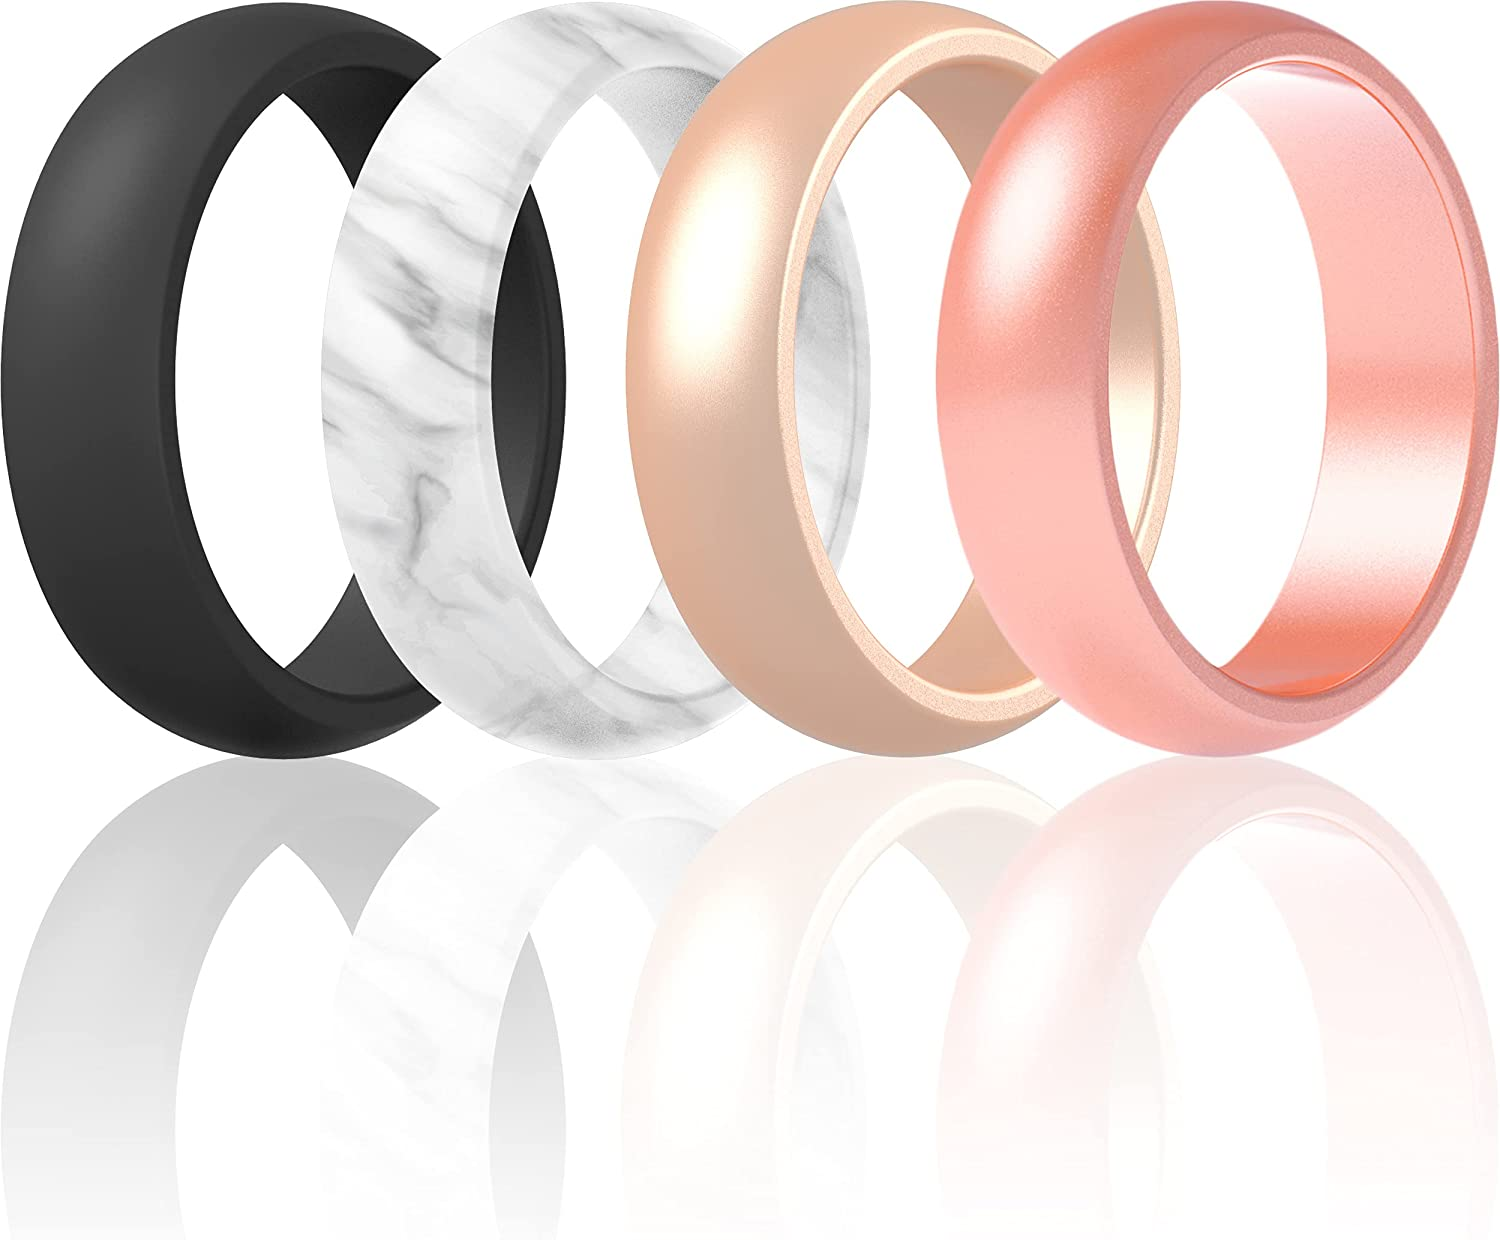 ThunderFit Silicone Wedding Bands for Women, Dome - 5.5mm Wide - 2mm Thick